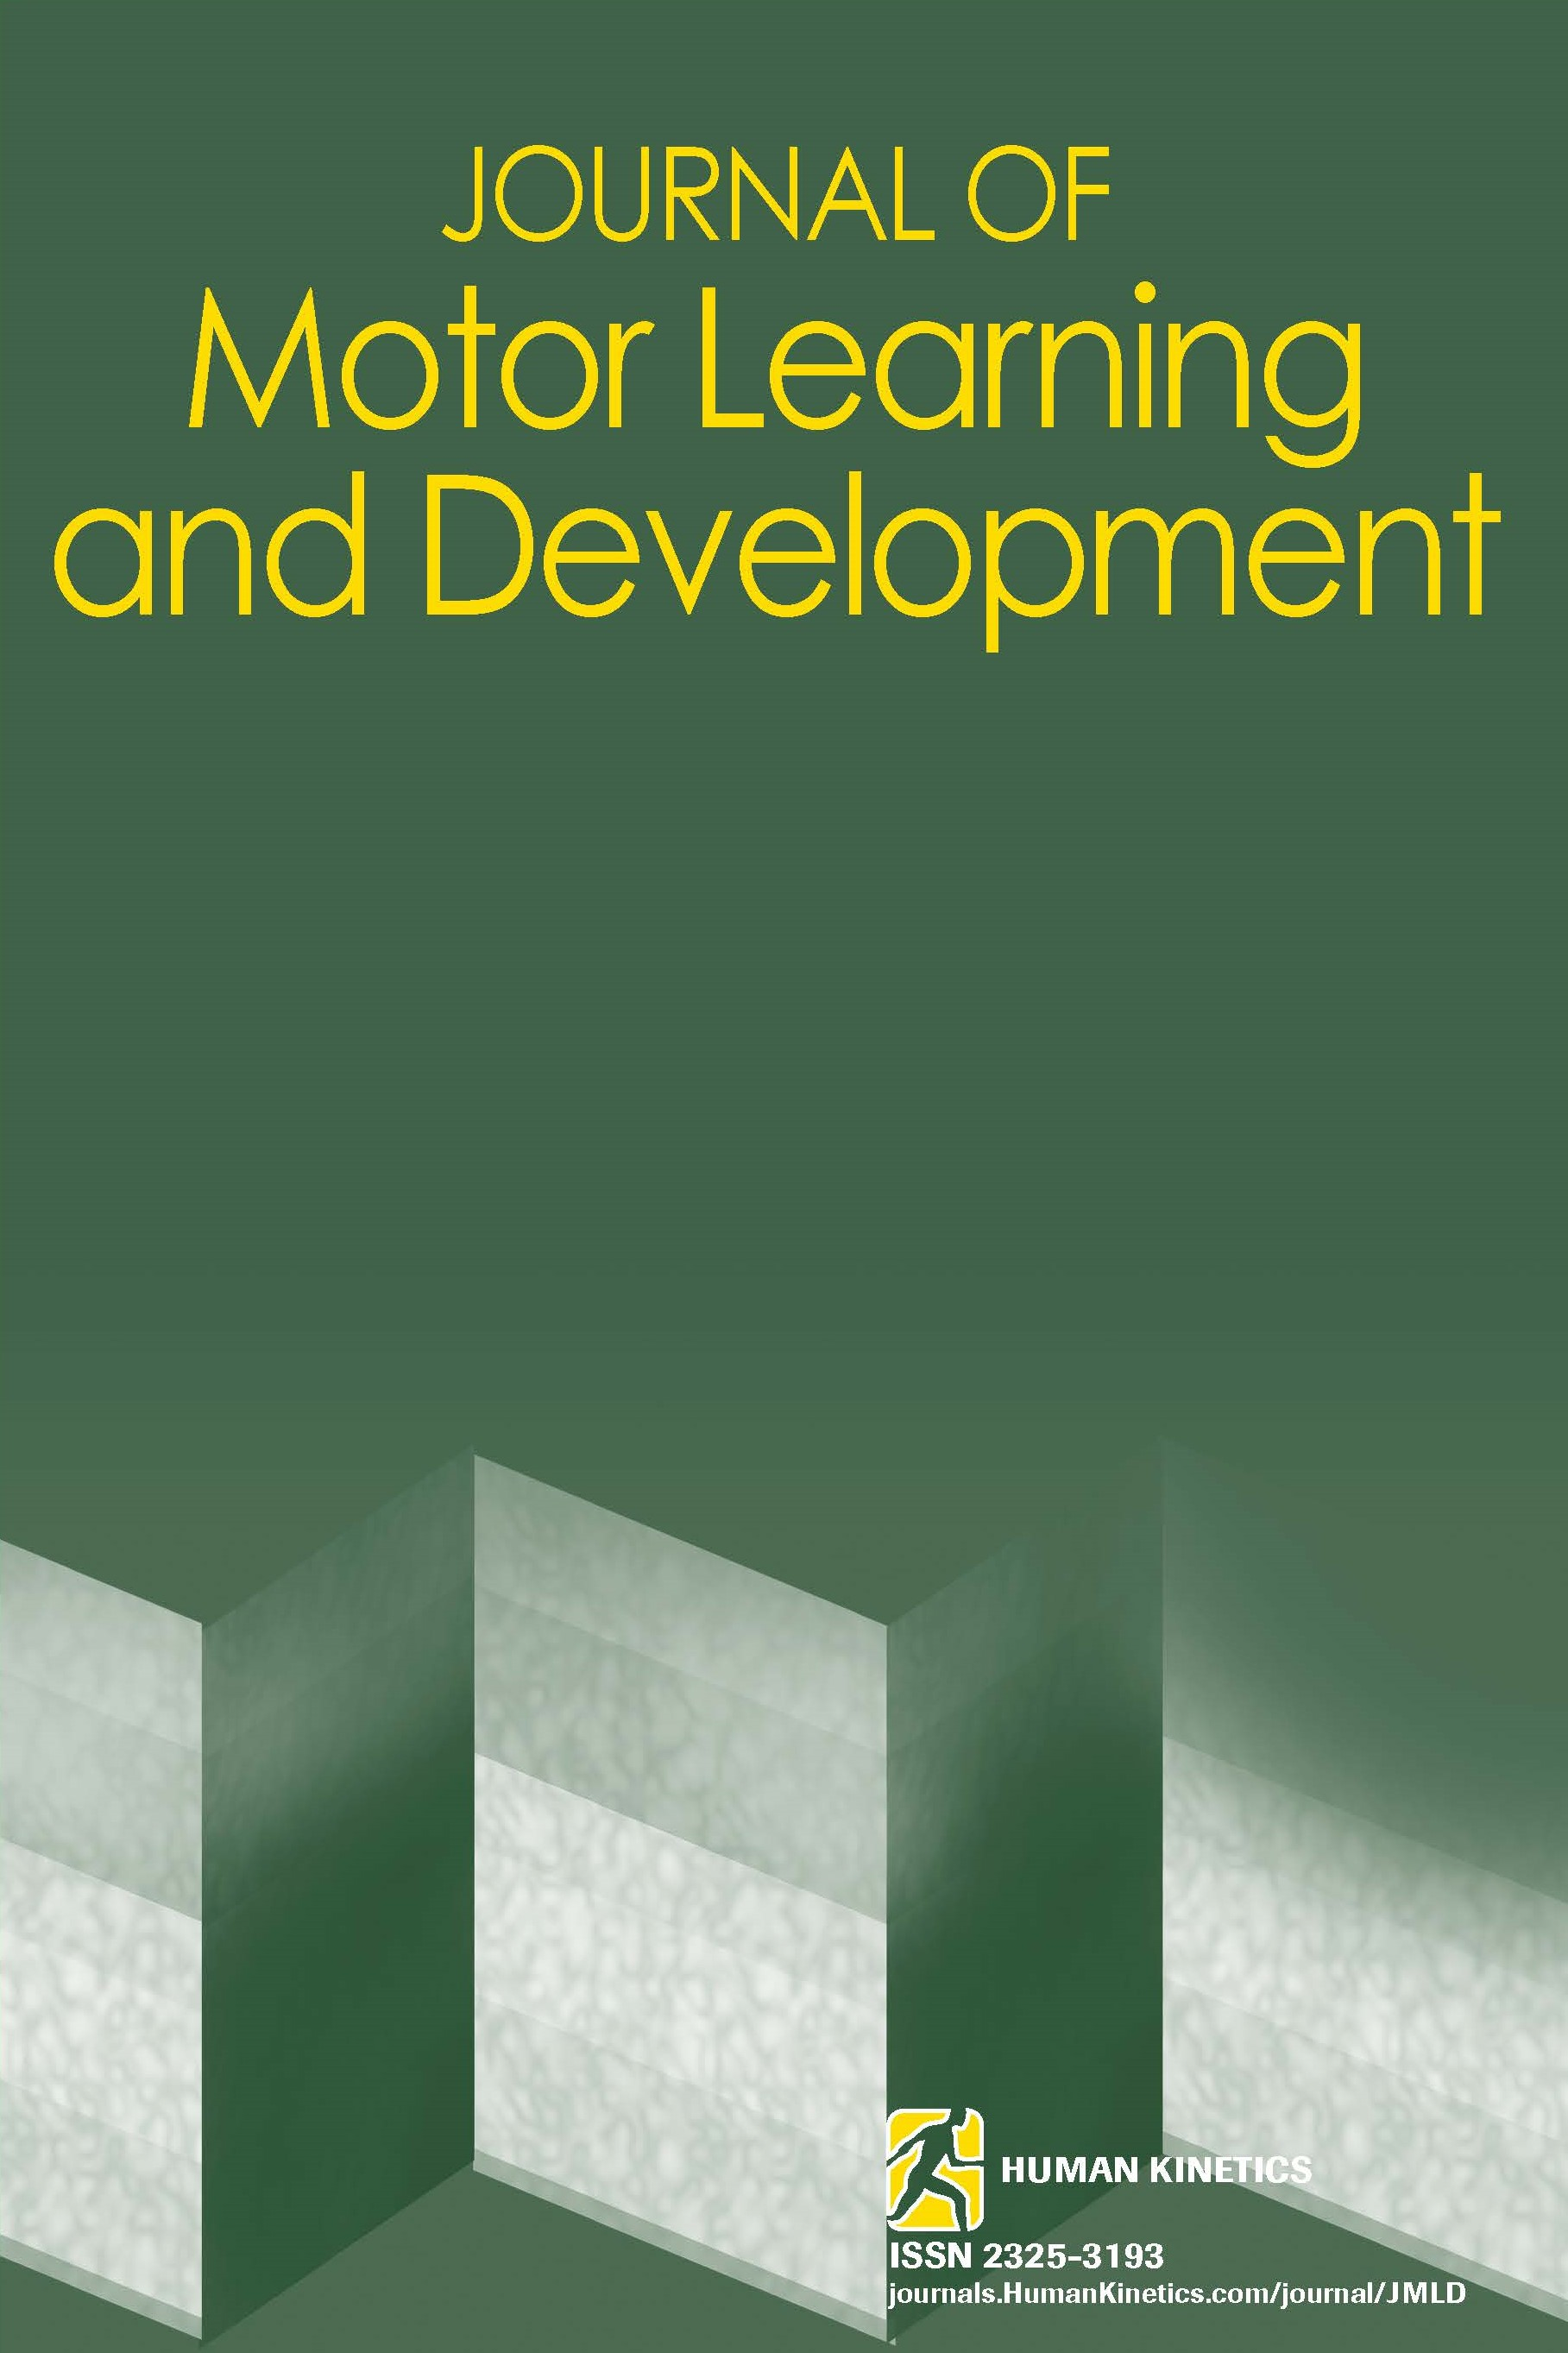 Journal of Motor Learning and Development